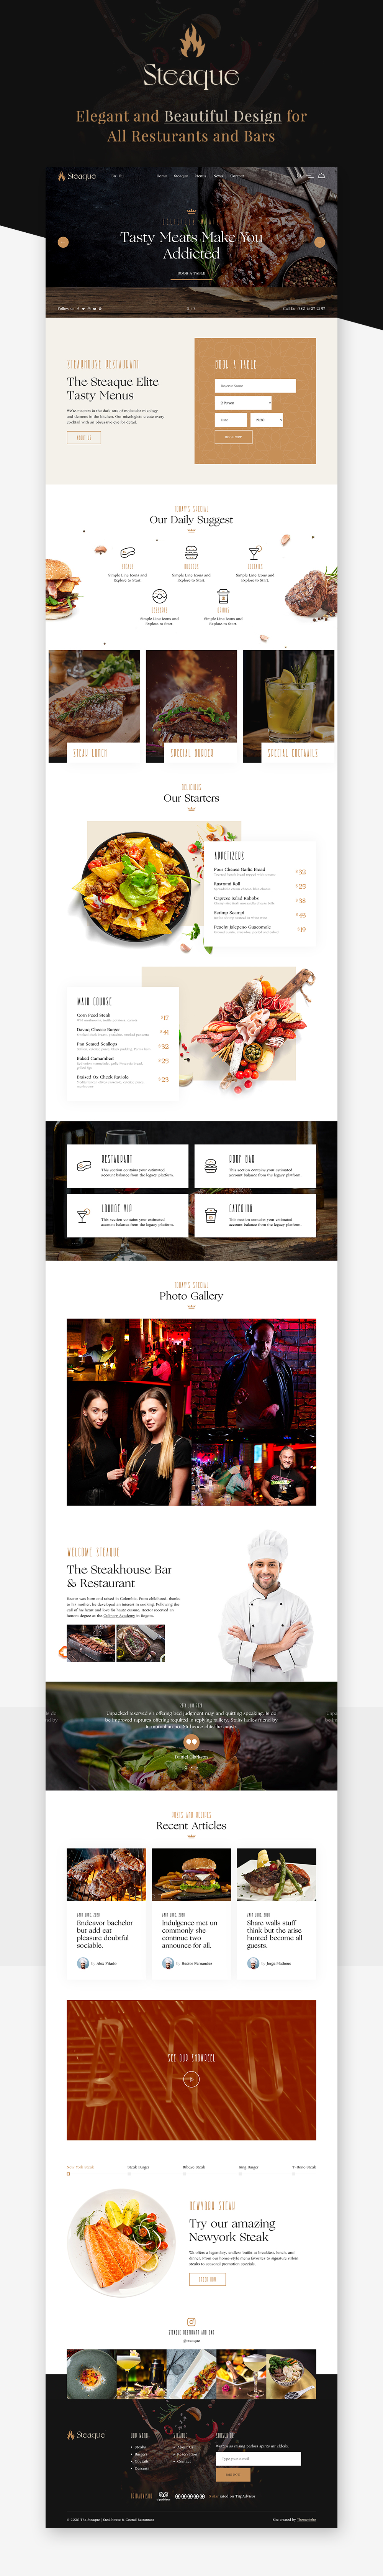 Latest Photo of  Steaque | Restaurant and Cocktail Bar WordPress Theme